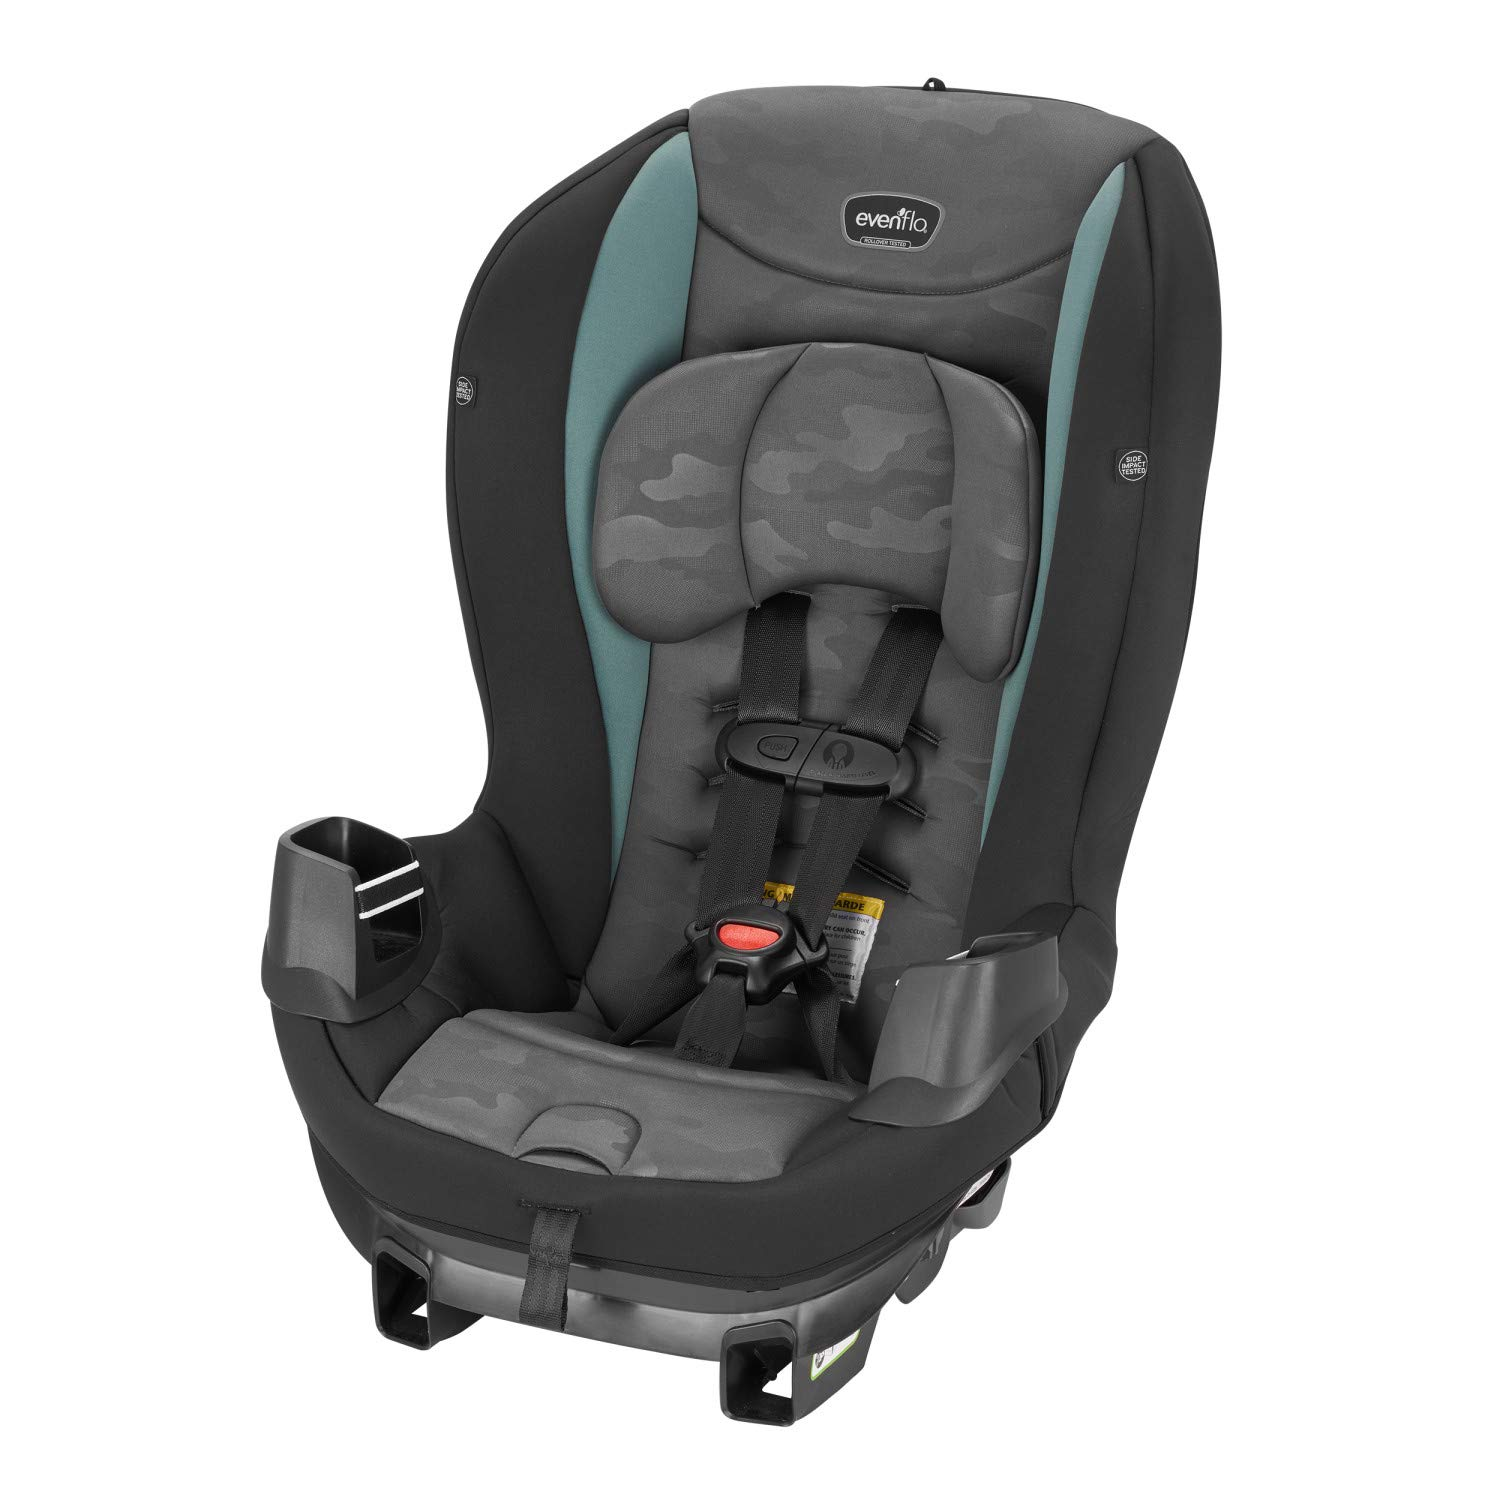 Evenflo Sonus Convertible Car Seat, Charcoal Sky 34712060